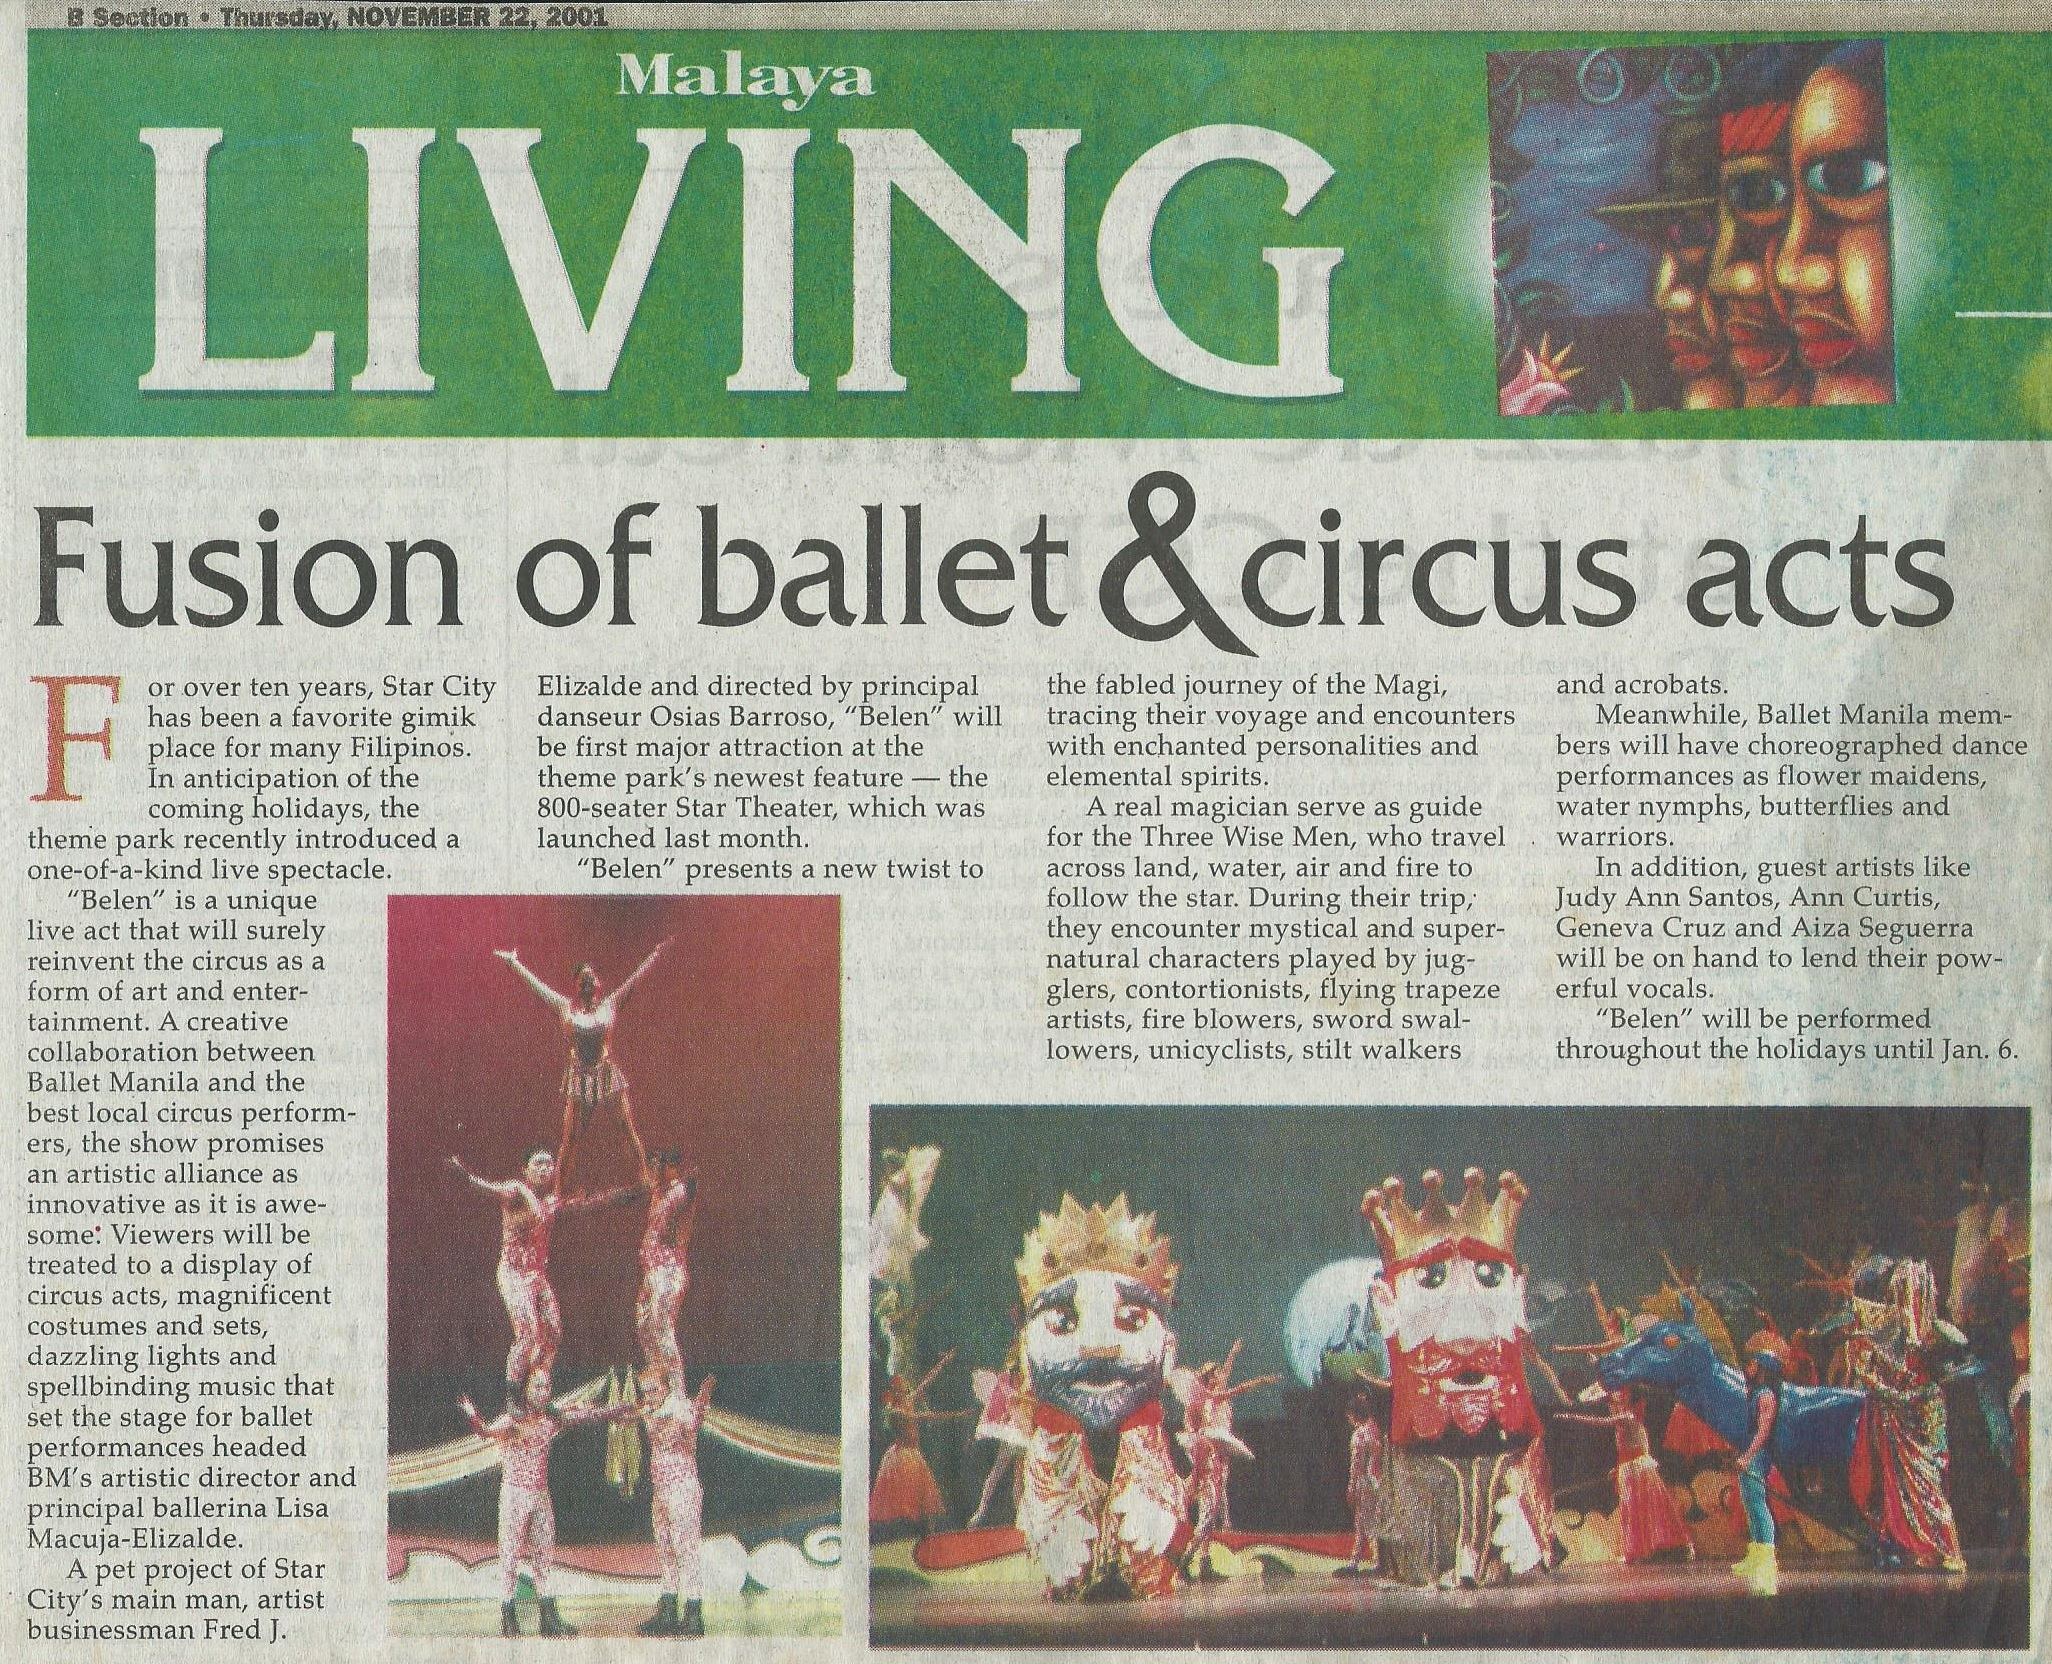 The  Circus D'Ballet  series was launched in 2001 with the show  Belen  which re-imagined the fabled journey of the Magi and was directed by Osias Barroso.